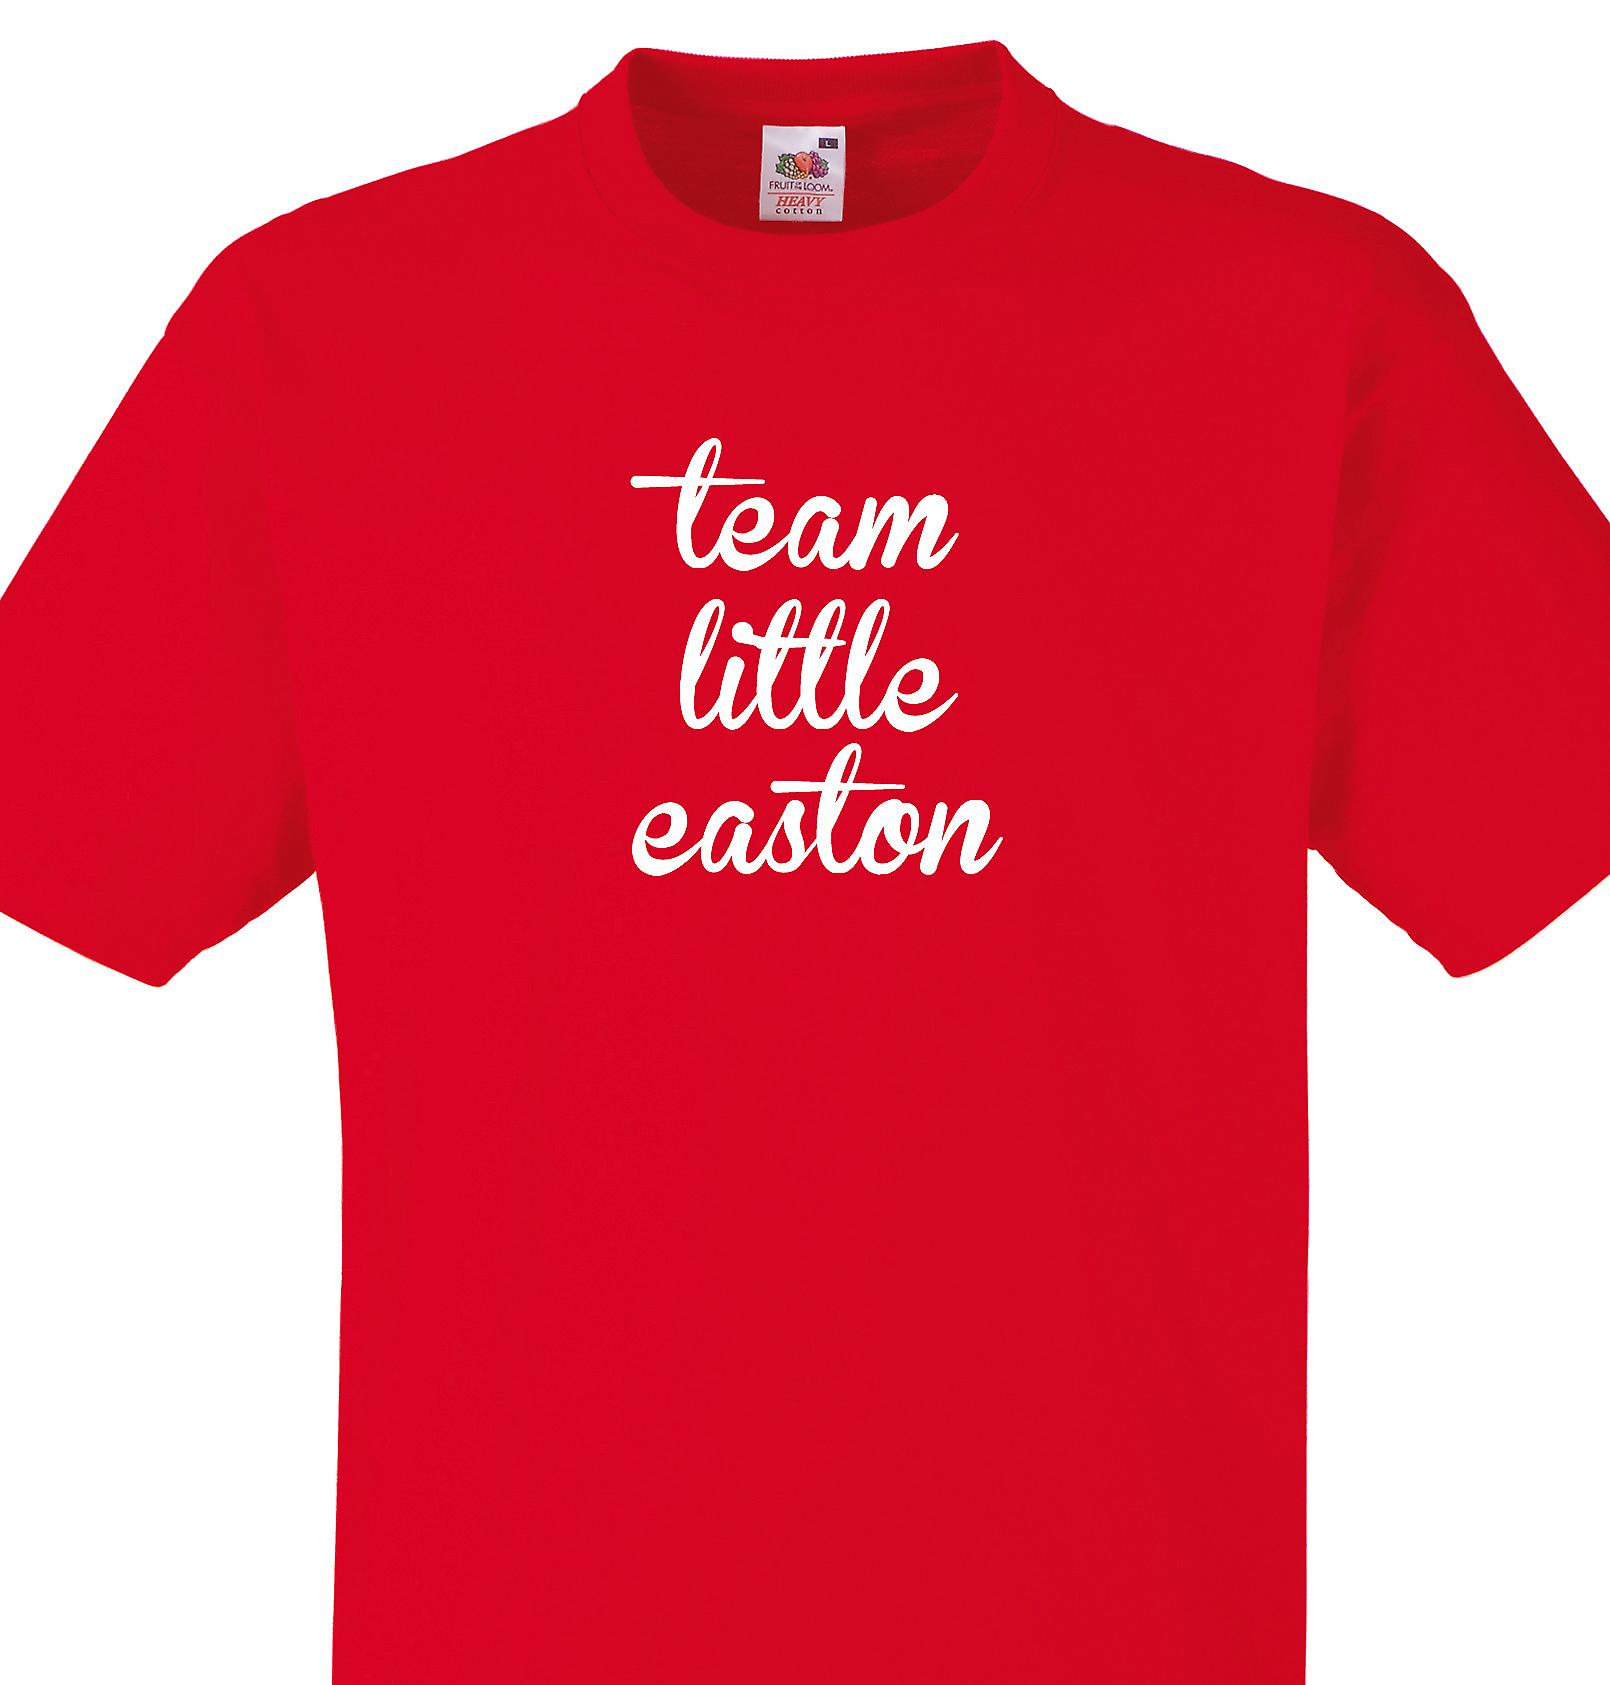 Team Little easton Red T shirt